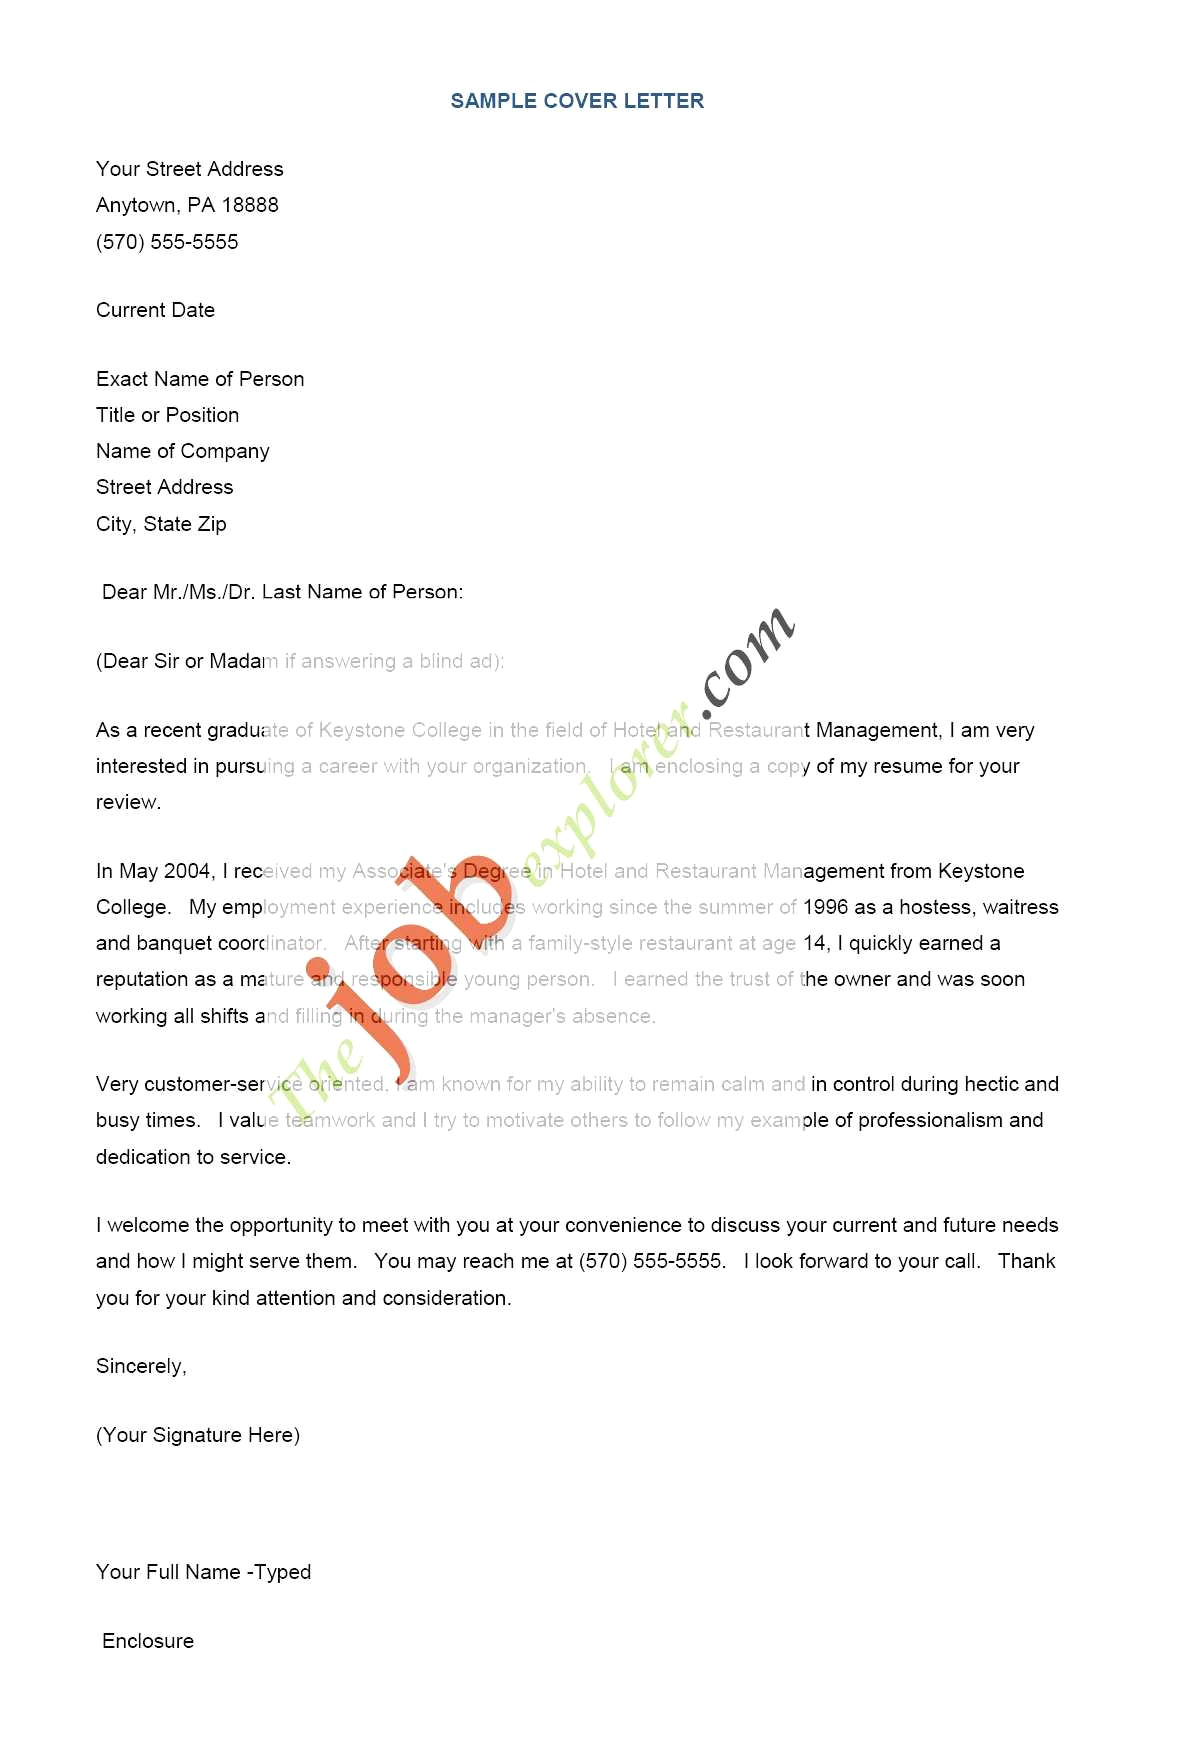 Resume and Cover Letter Review - 50 Awesome Sample Cover Letters for Resume